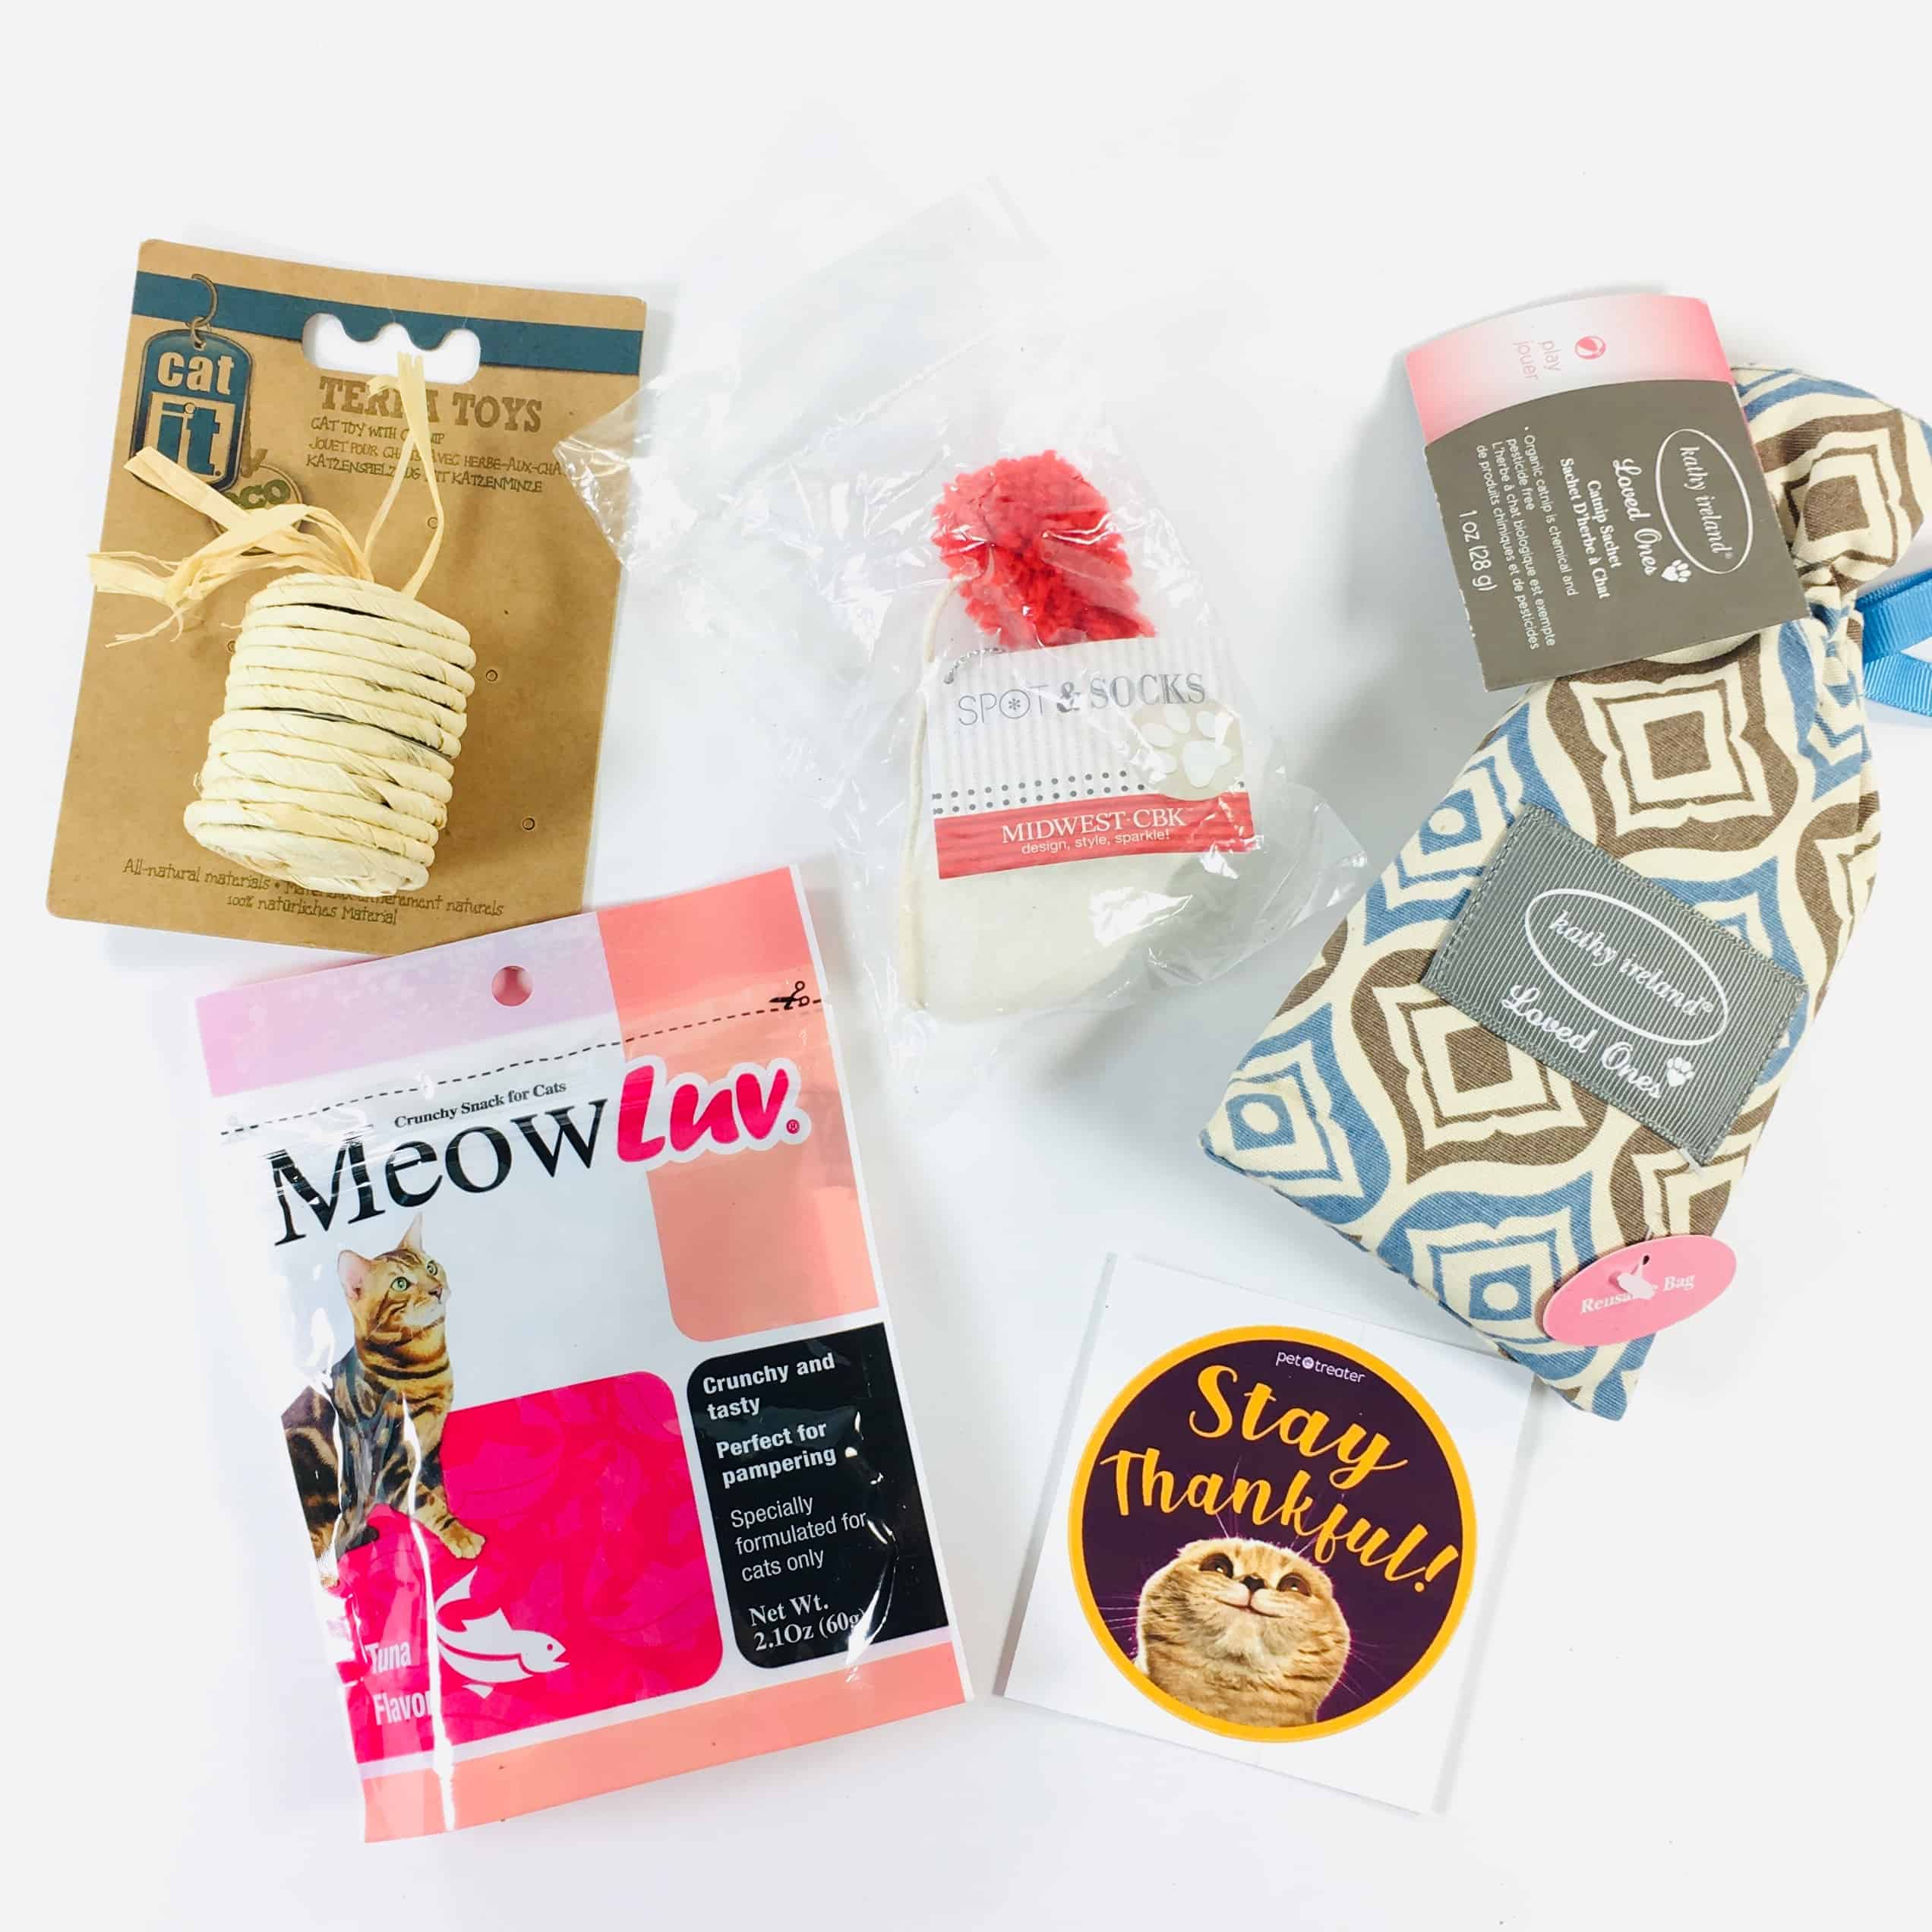 Pet Treater Cat Pack November 2018 Subscription Box Review + Coupon